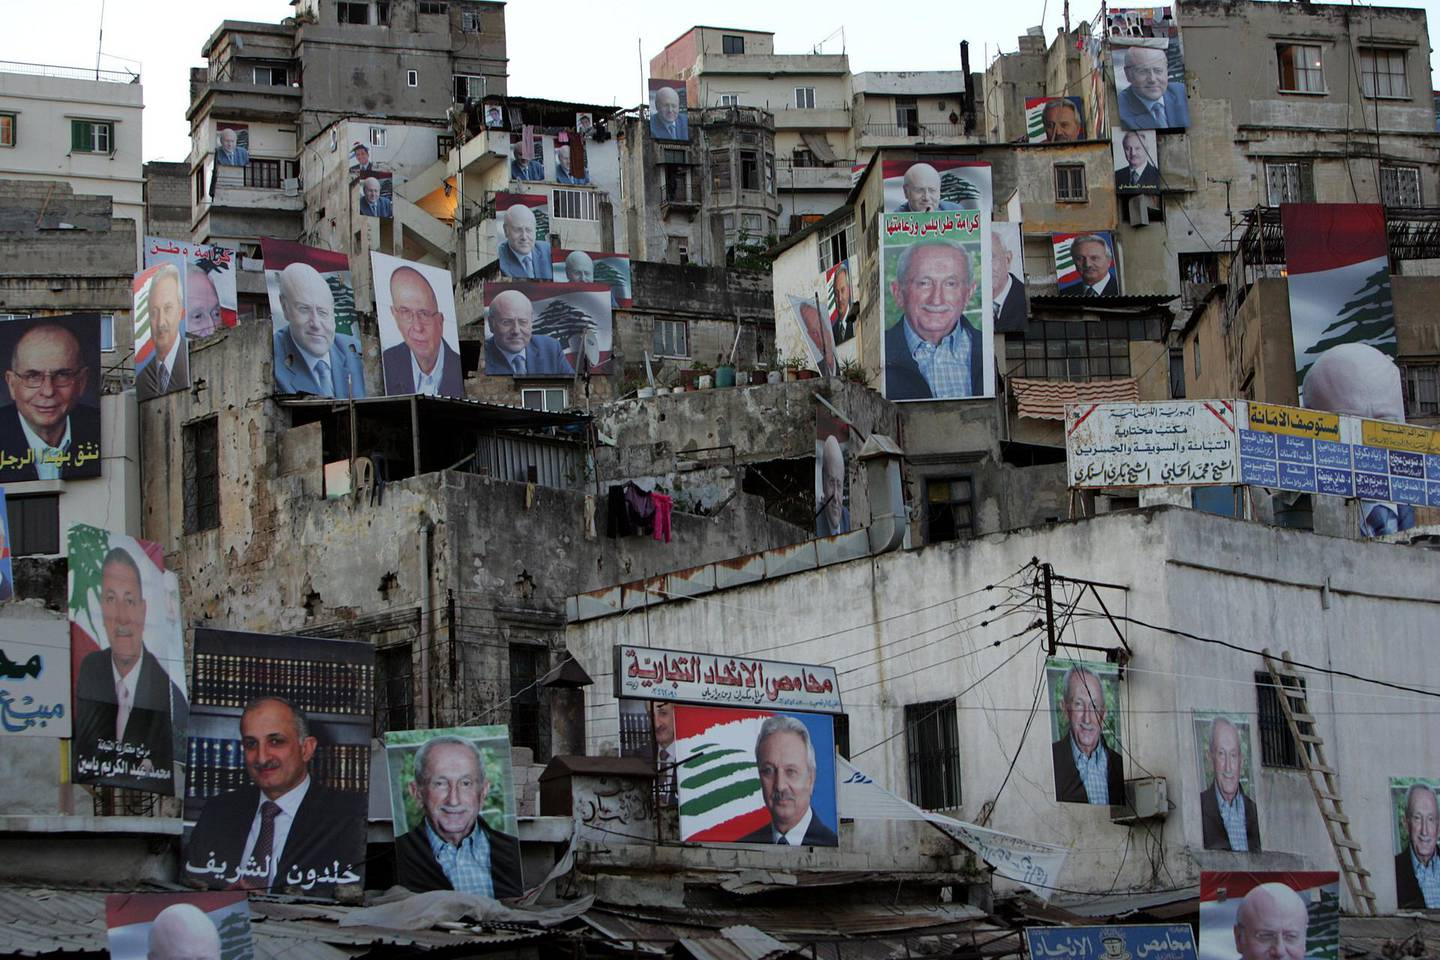 Election campaign posters cover buildings in a working class neighbourhood of the northern Lebanese port city of Tripoli, as Lebanese voters cast their ballots on June 7, 2009 in a high-stakes general election pitting a Western-backed coalition against an Iranian-backed alliance led by the Hezbollah militant group. AFP PHOTO/ANWAR AMRO / AFP PHOTO / ANWAR AMRO